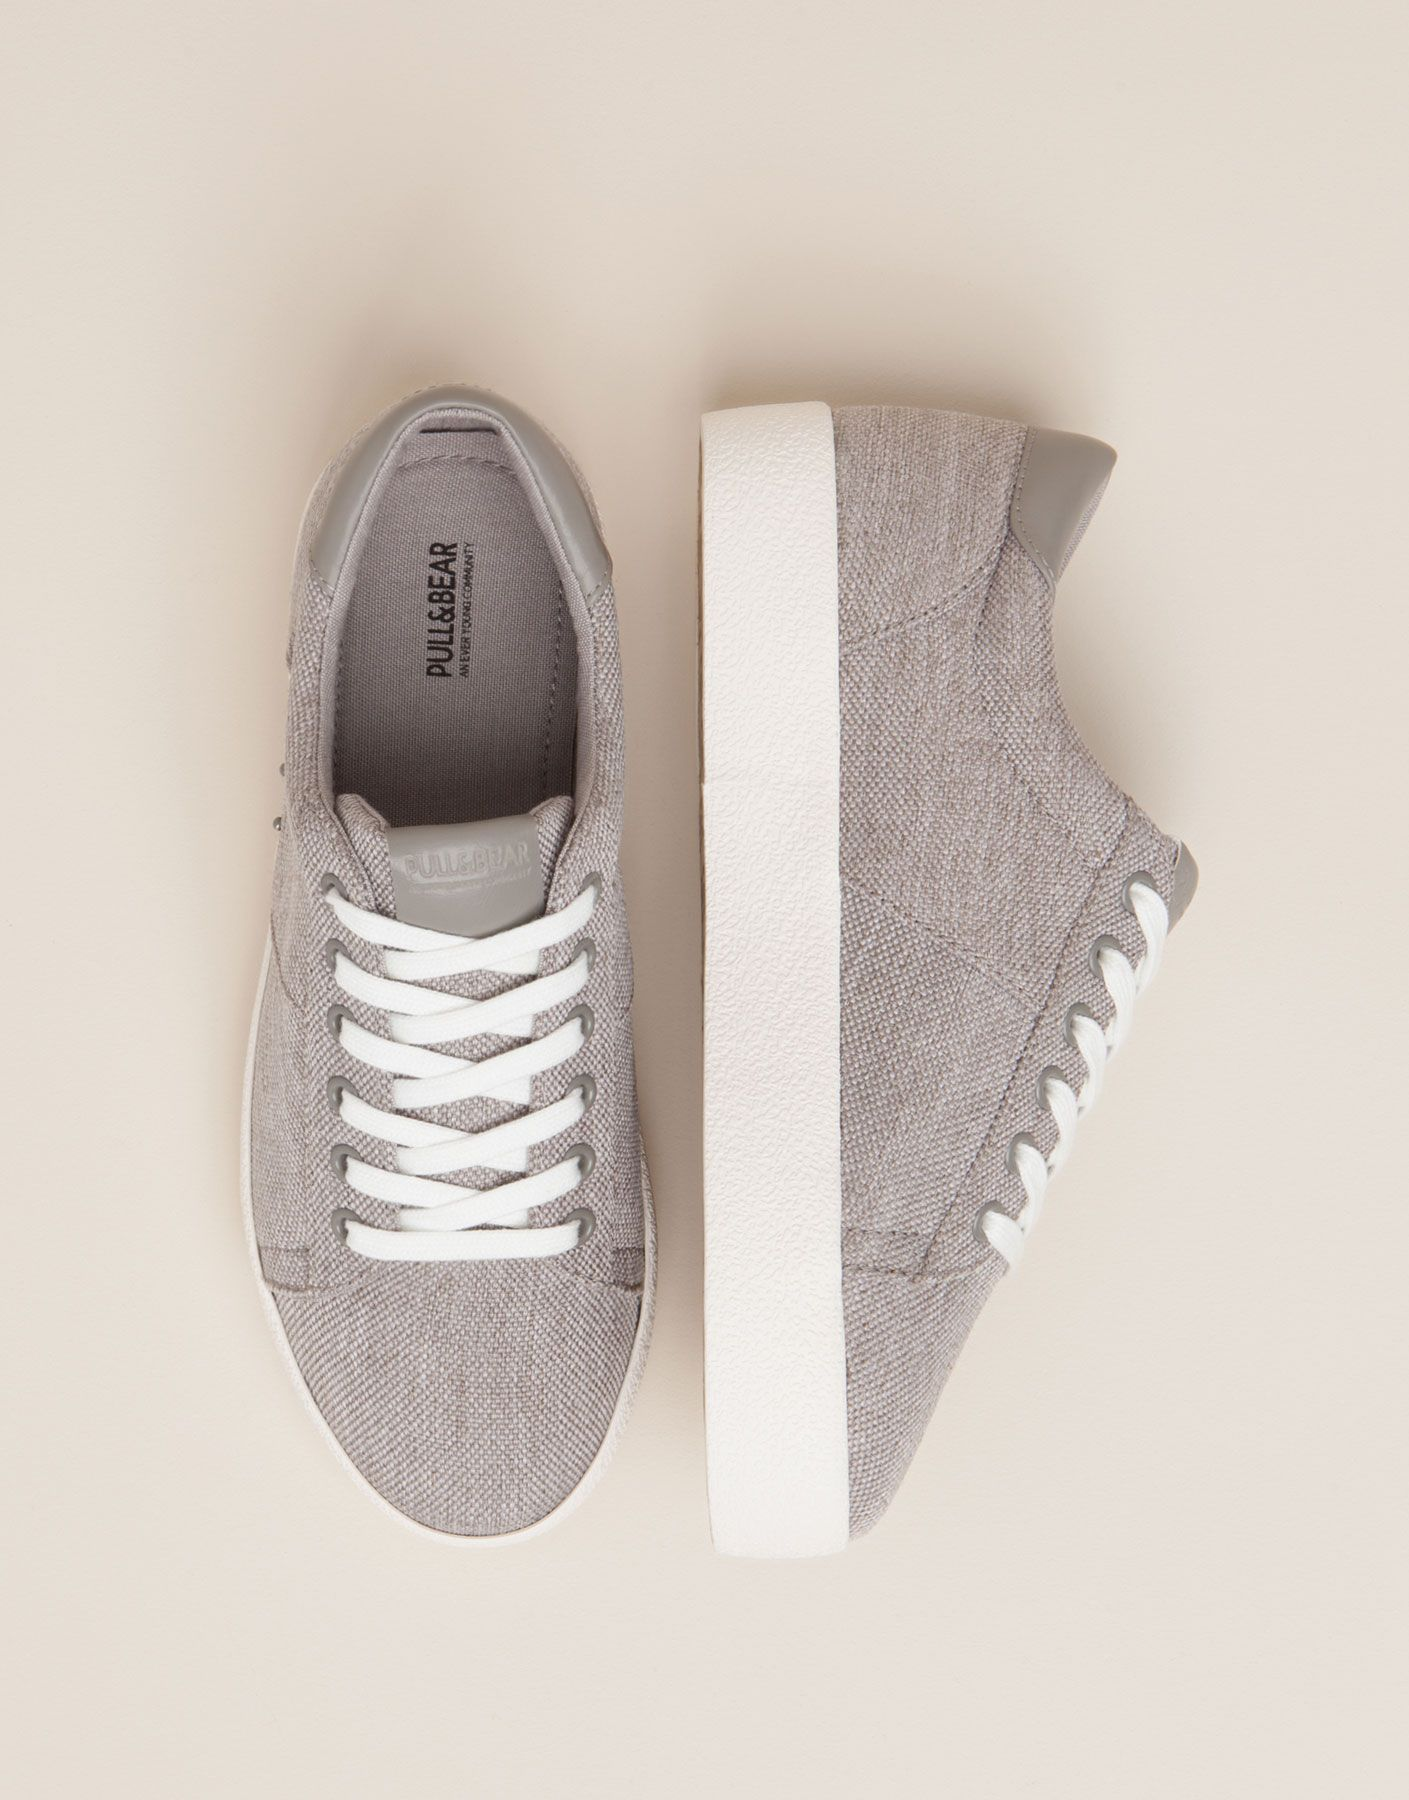 new styles 9ab42 e9b99 BAMBA BLOQUE COLLEGE GRIS - ZAPATOS MUJER - MUJER - PULL BEAR España